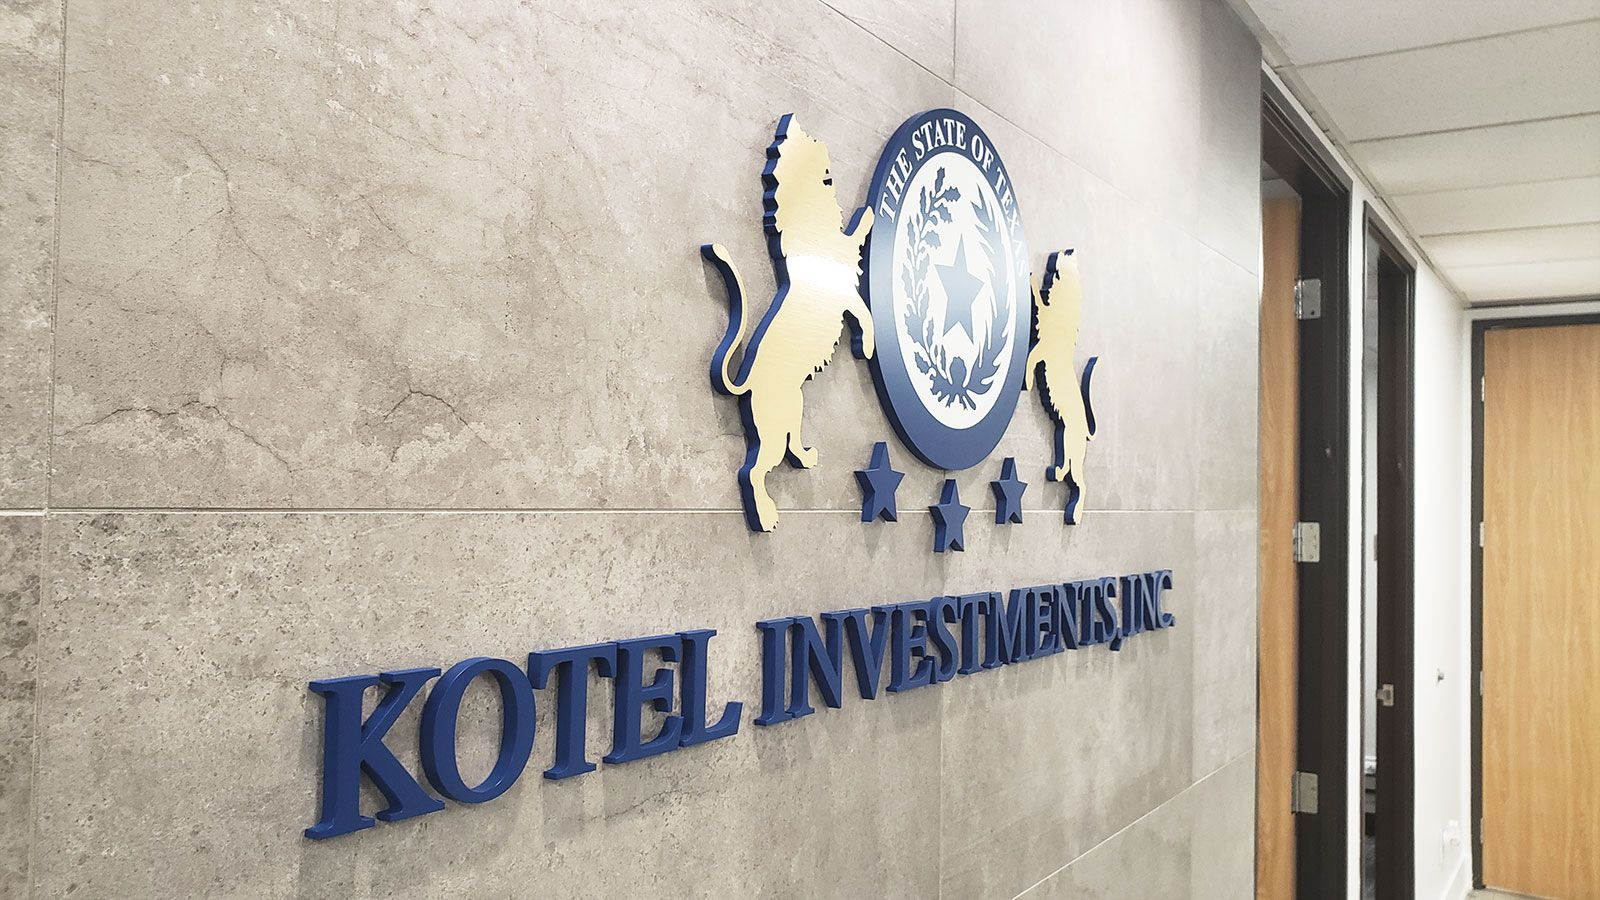 Kotel investments 3d letters